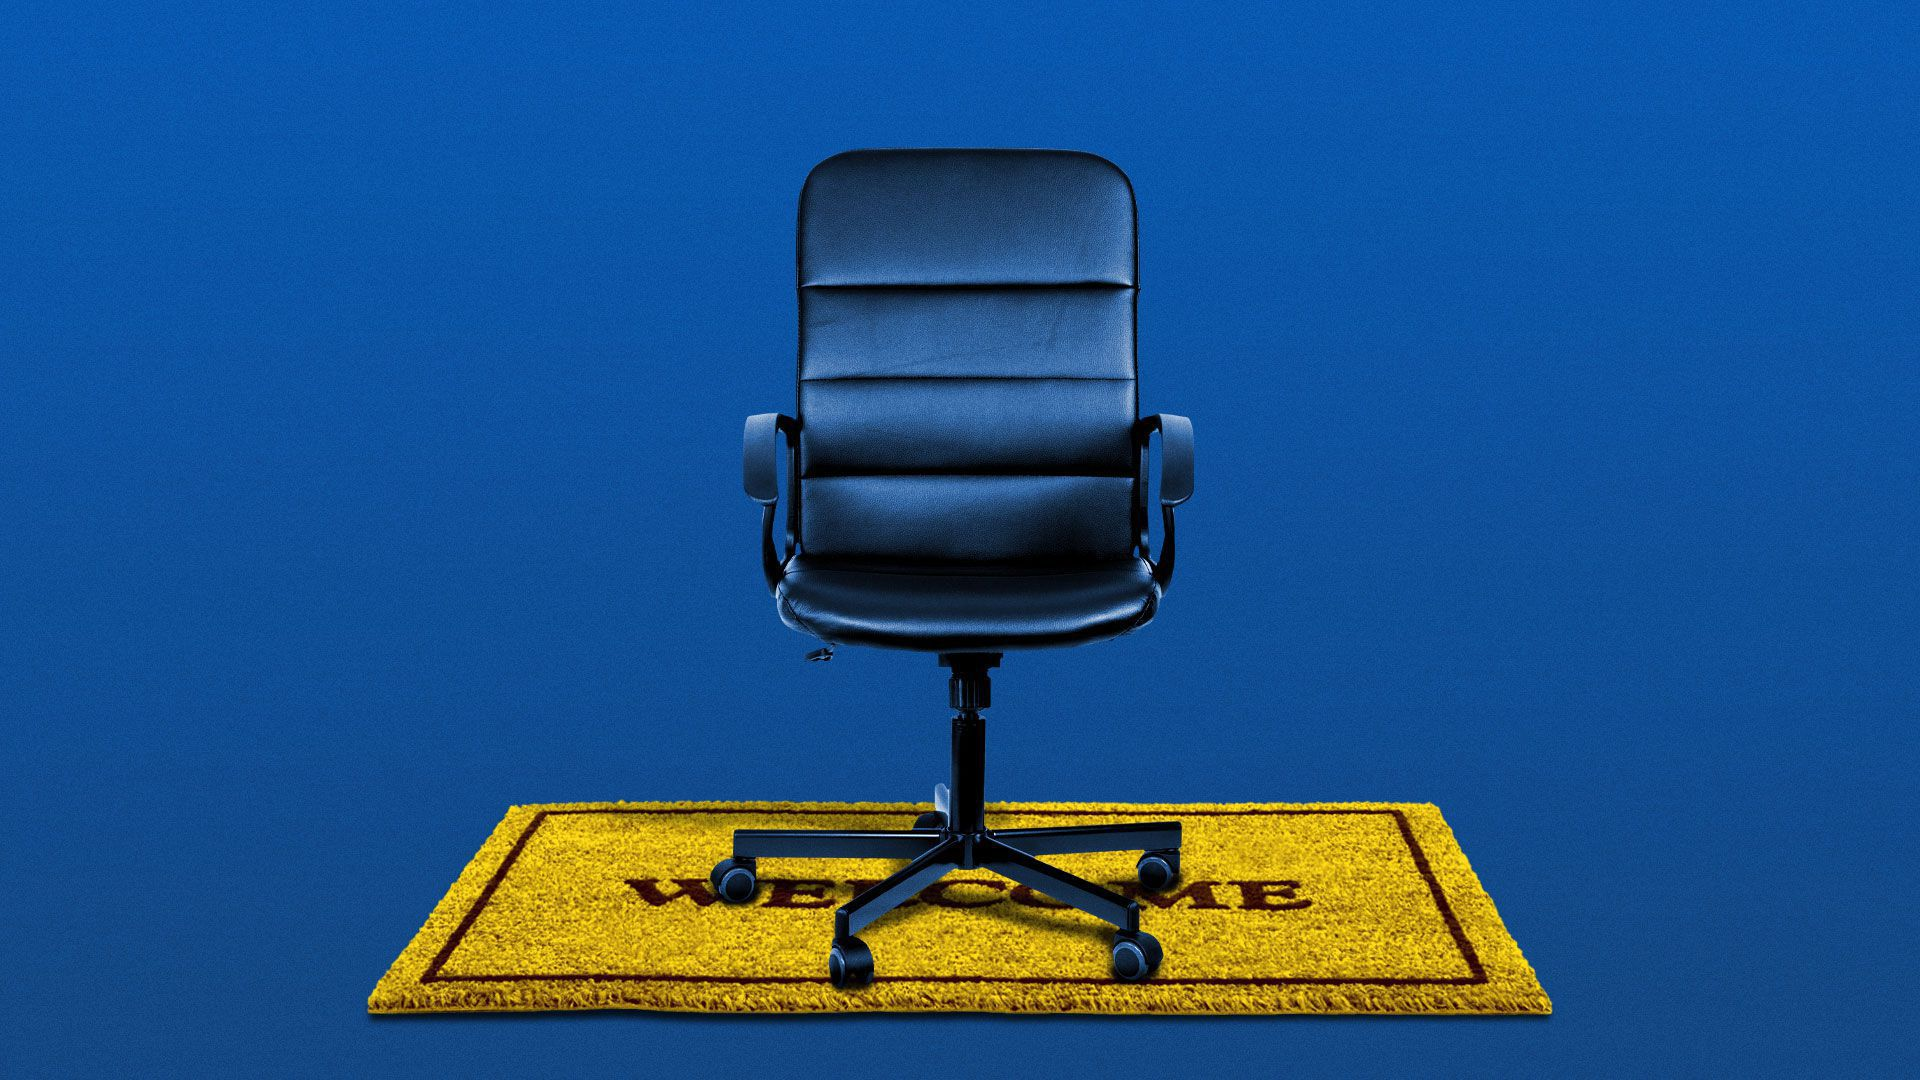 Illustration of a desk chair on a welcome mat.